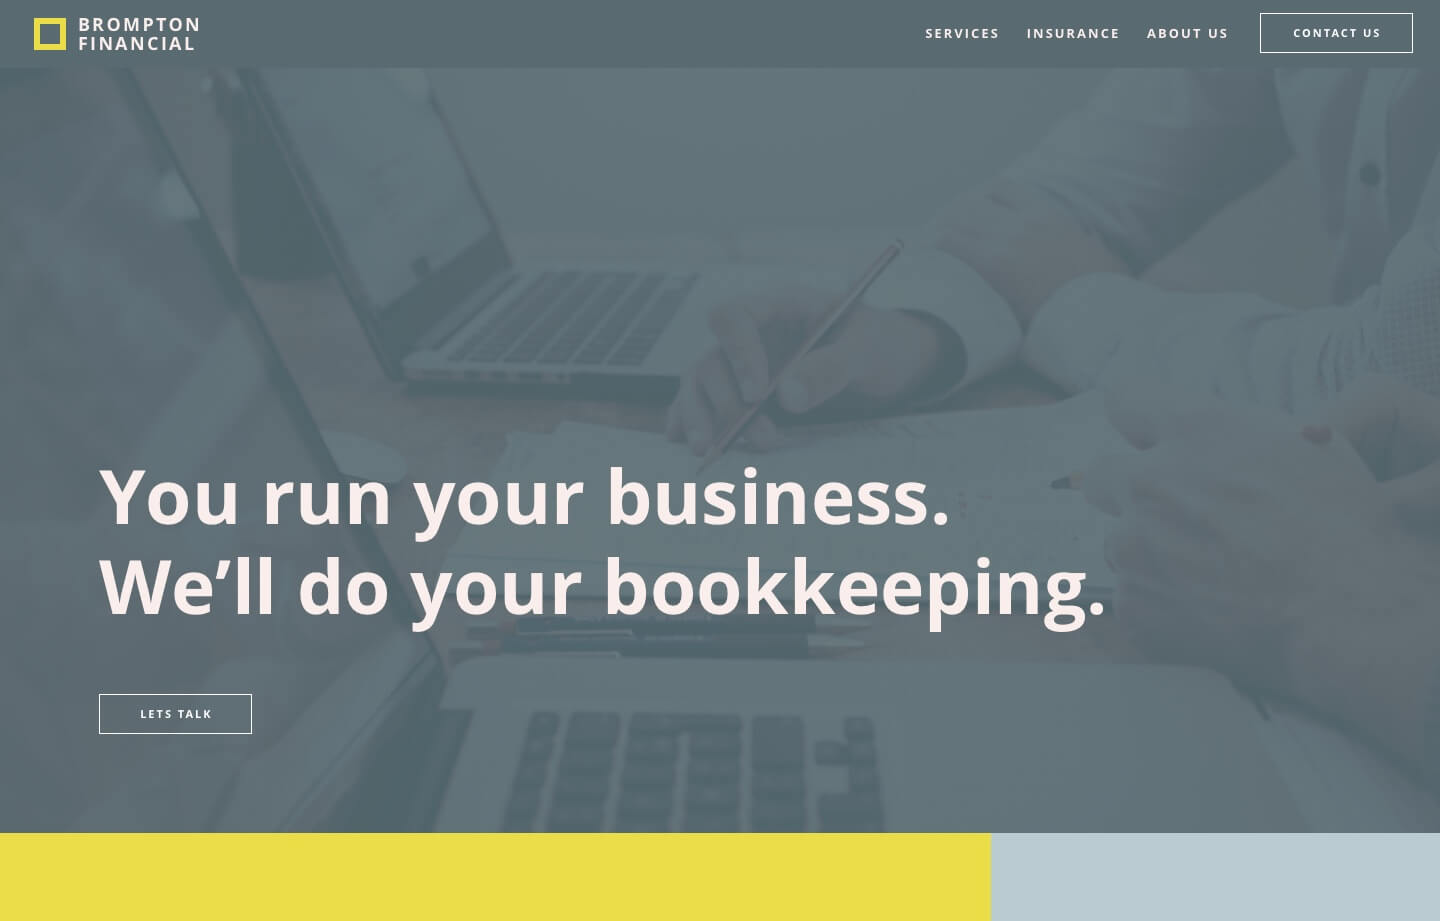 cpa and accounting firm brompton financial website